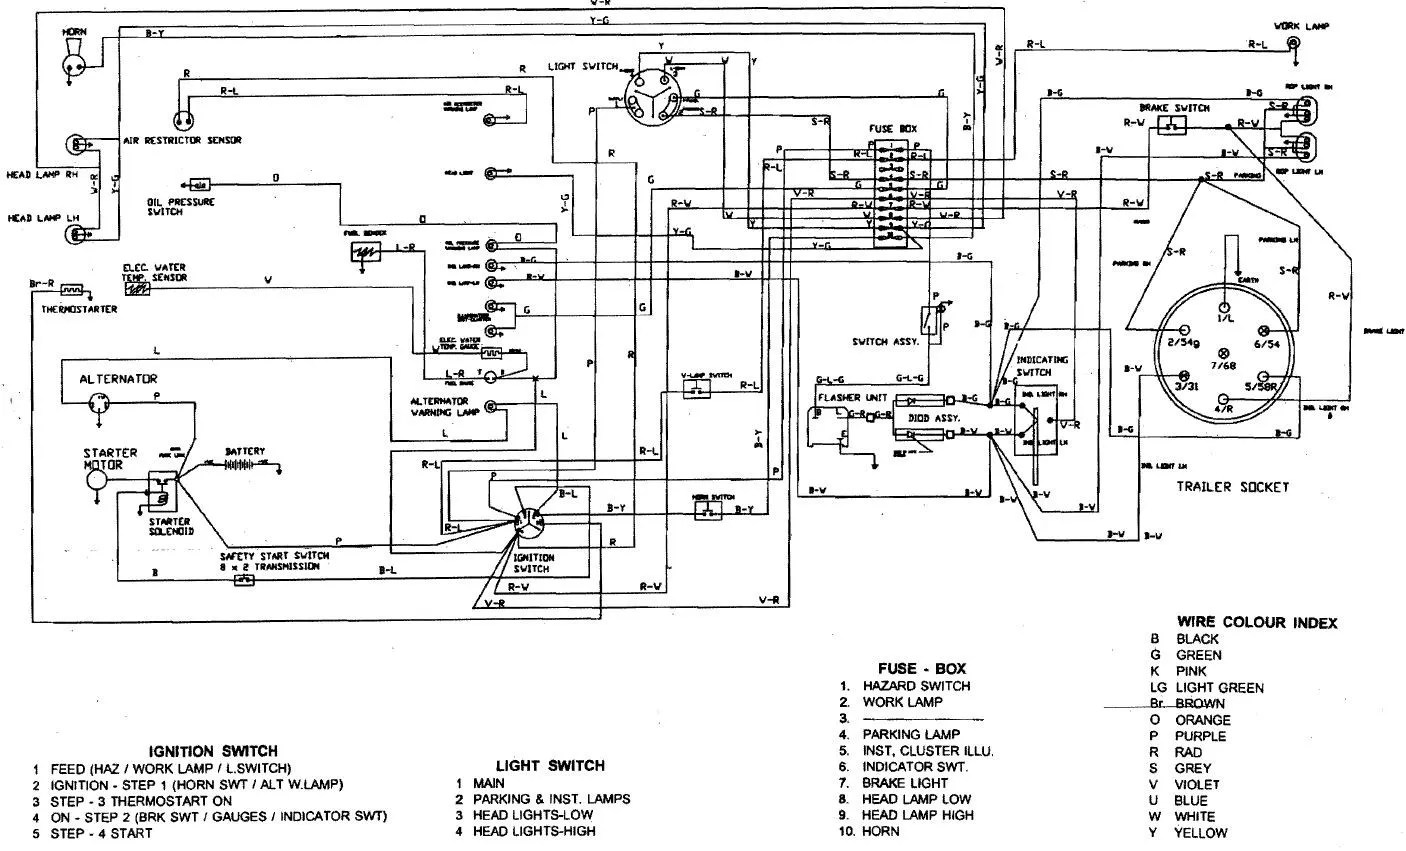 medium resolution of 4000 tractor ignition wiring diagram attached is a wiring diagram